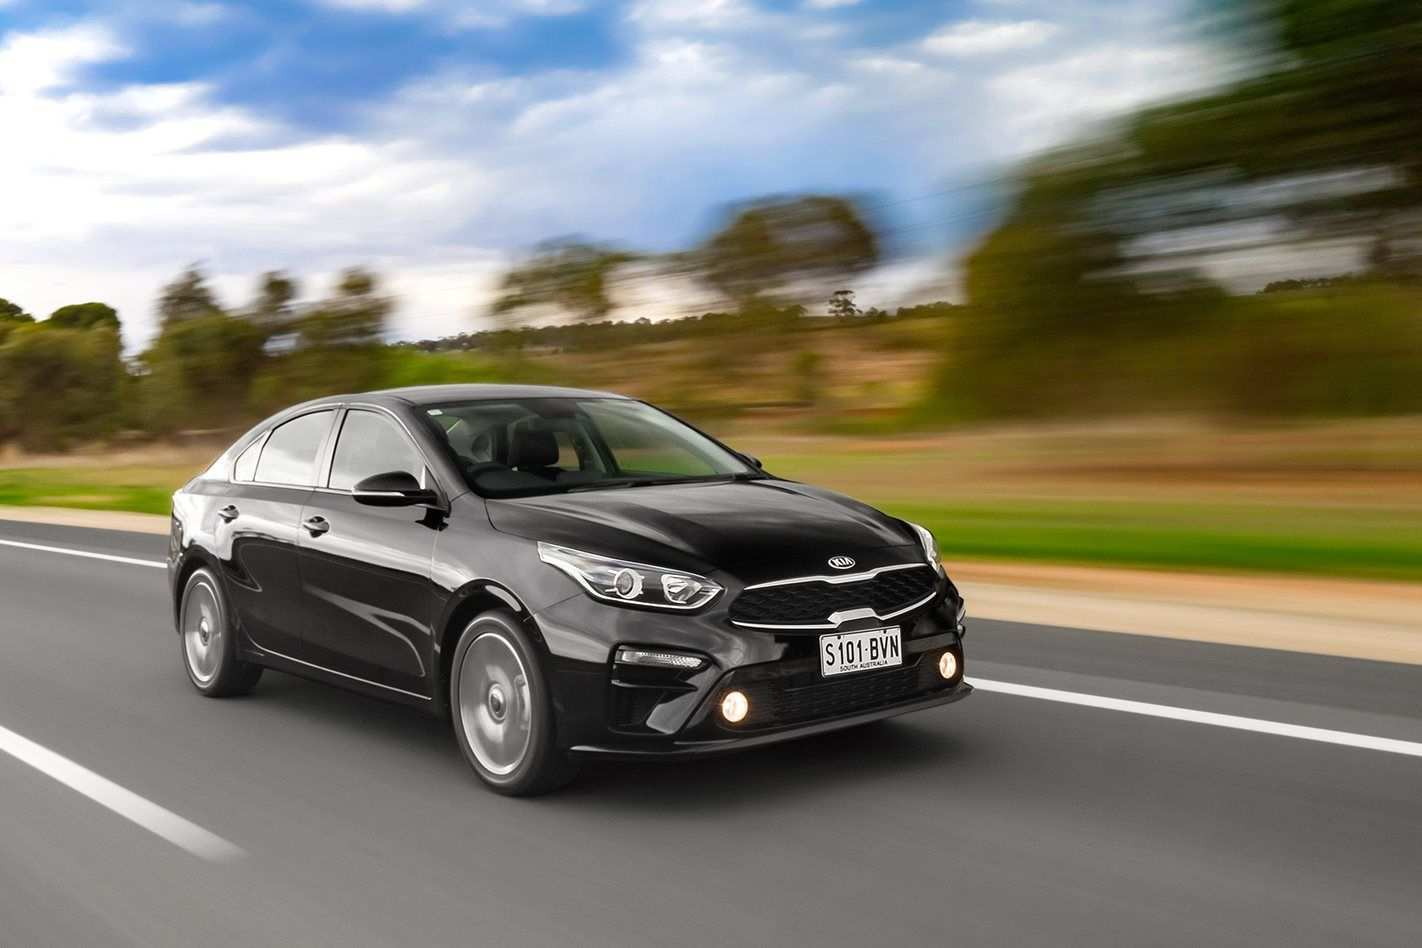 28 Great Kia Cerato 2019 Release Date New Engine Prices by Kia Cerato 2019 Release Date New Engine